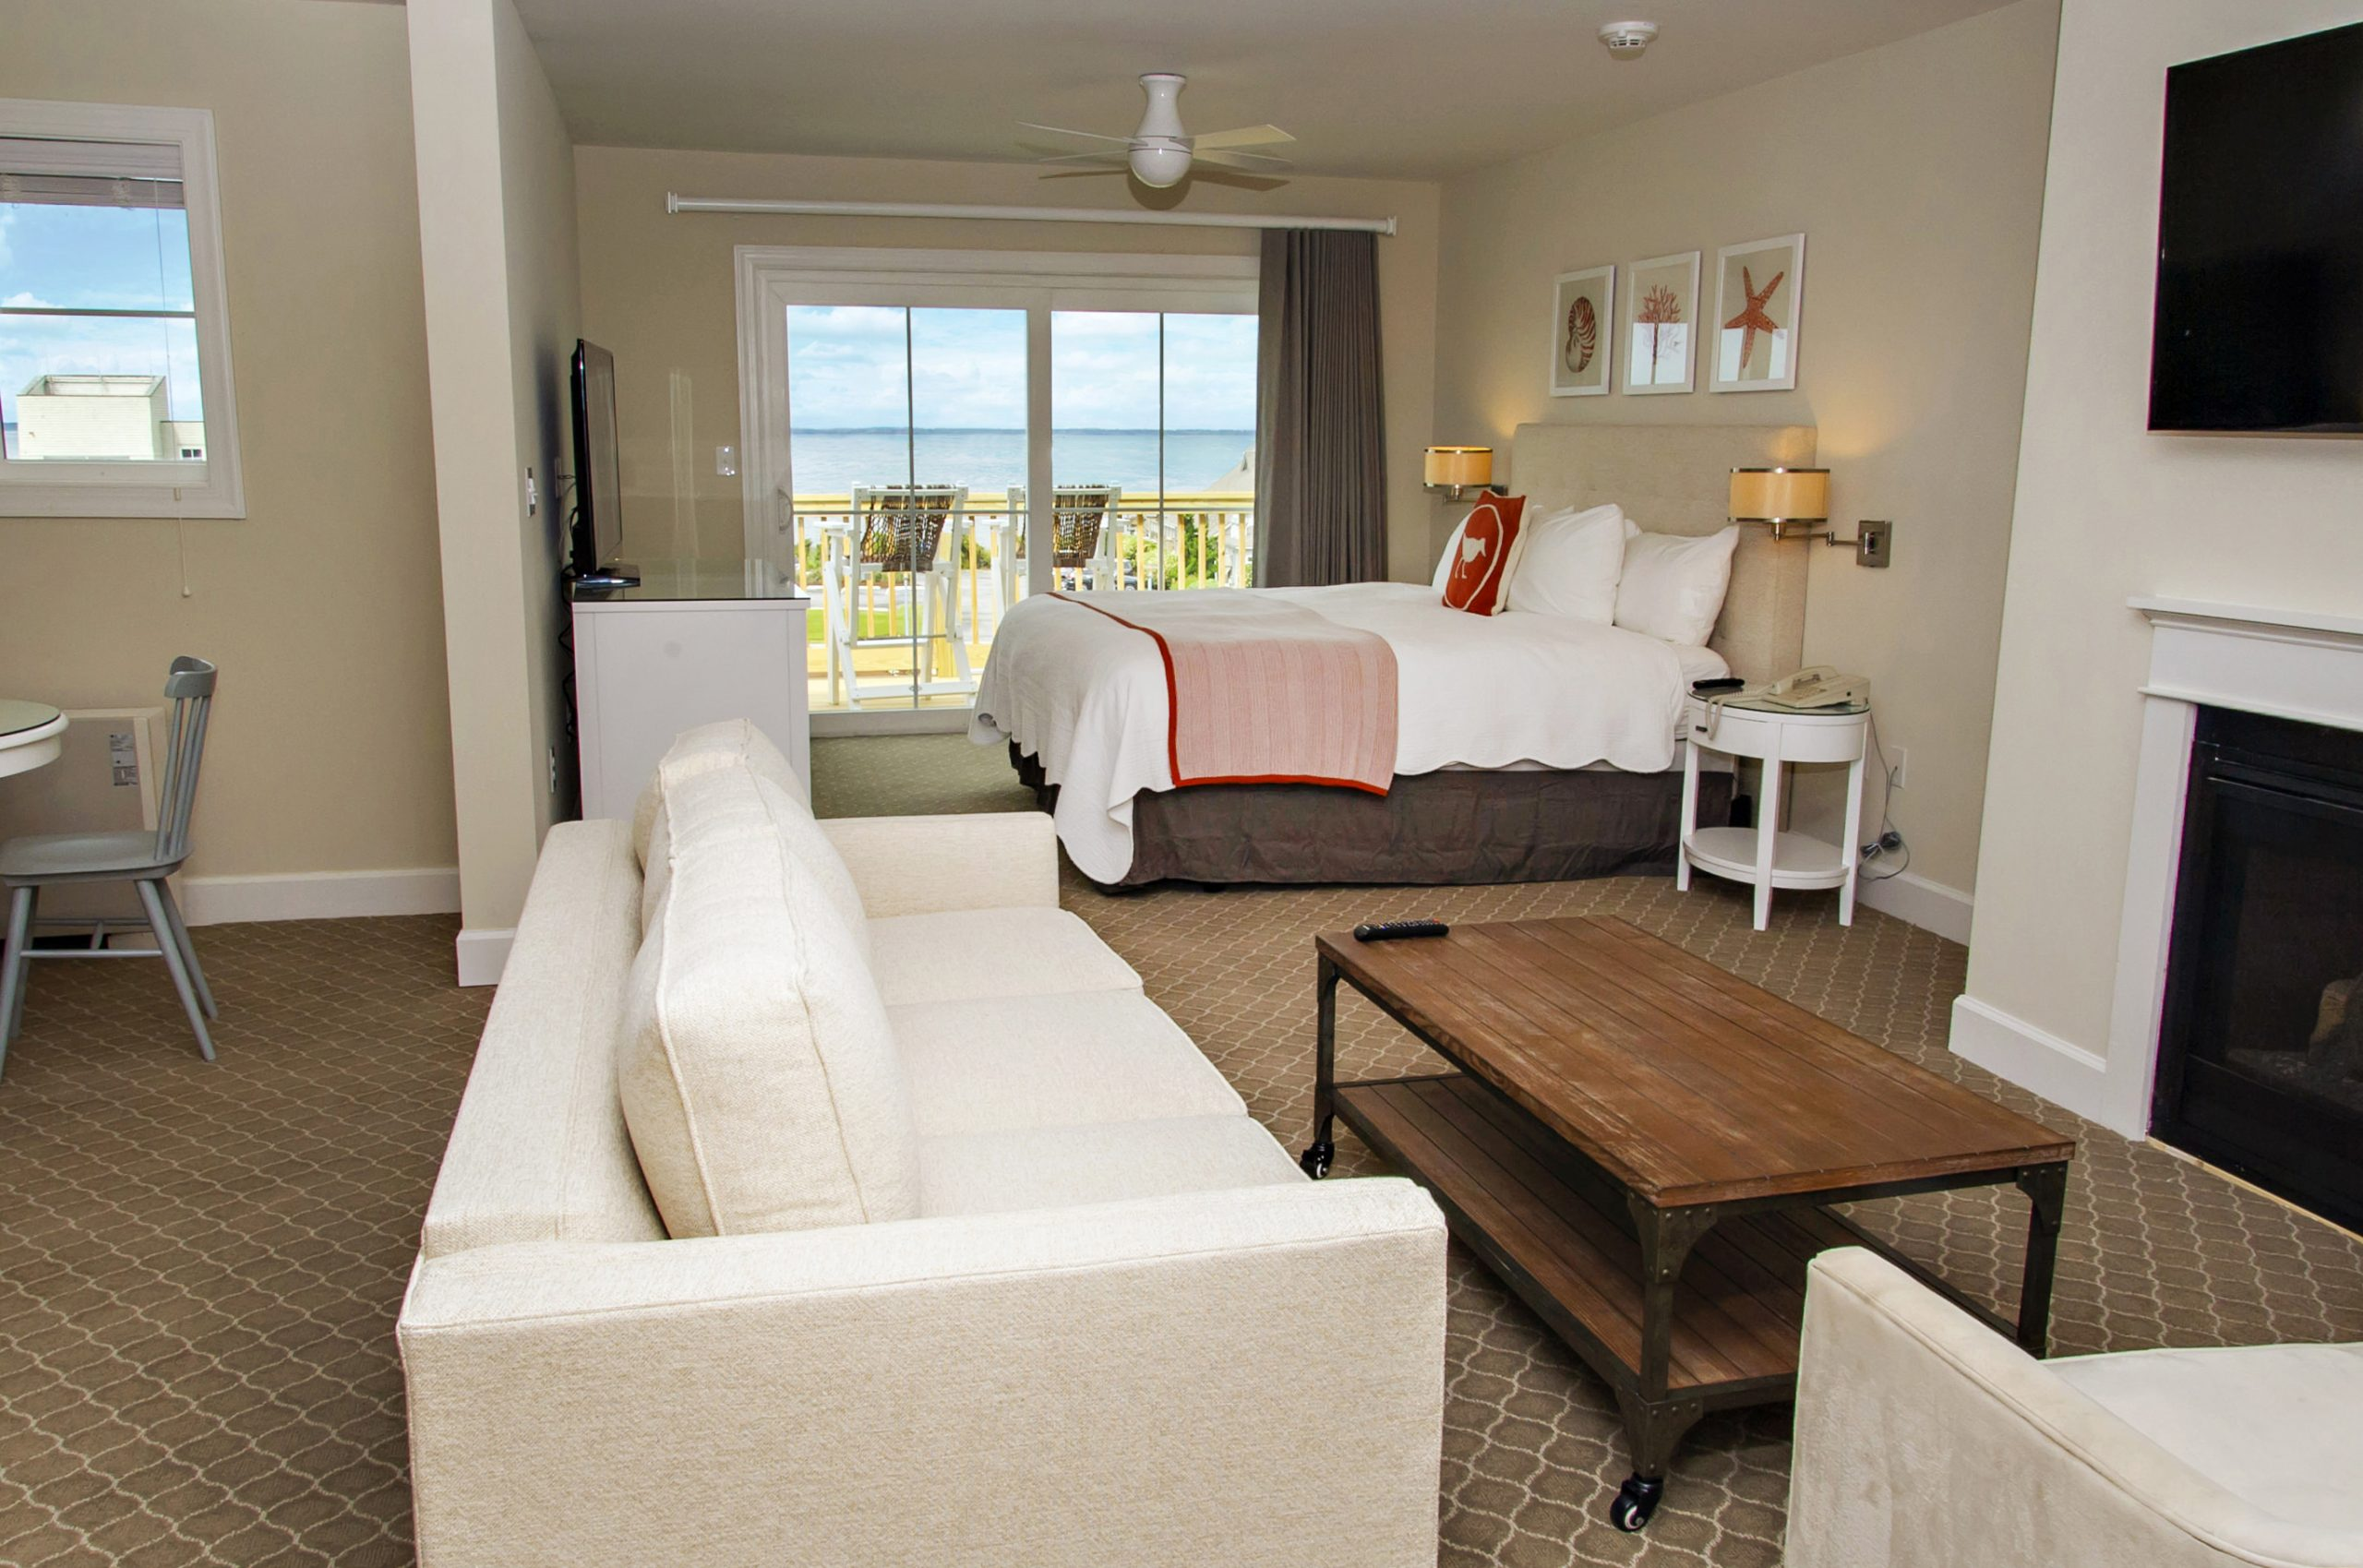 Room interior with couch seating and ocean view